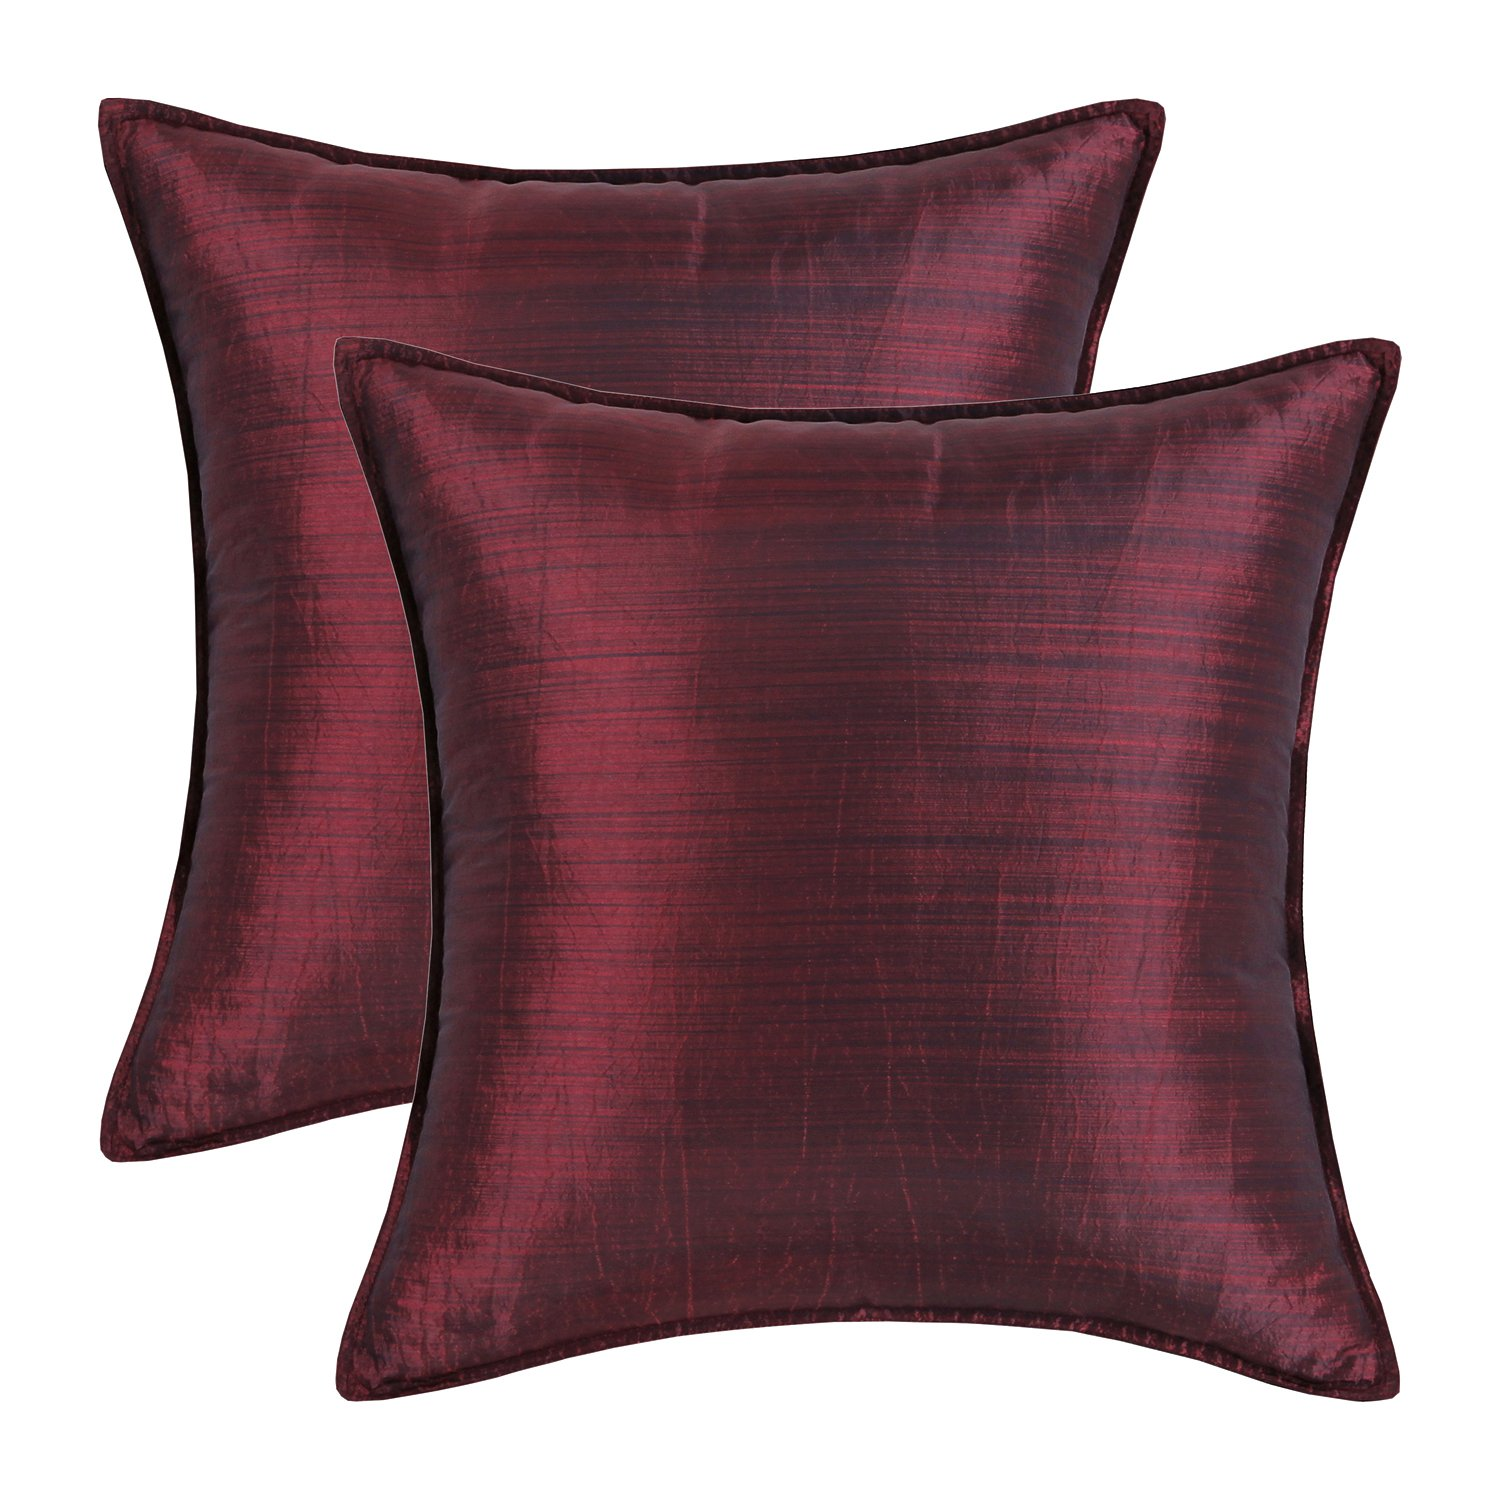 CaliTime Pack of 2, Silky Throw Pillow Covers Cases for Couch Sofa Bed, Modern Light Weight Dyed Striped, 22 X 22 Inches, Burgundy